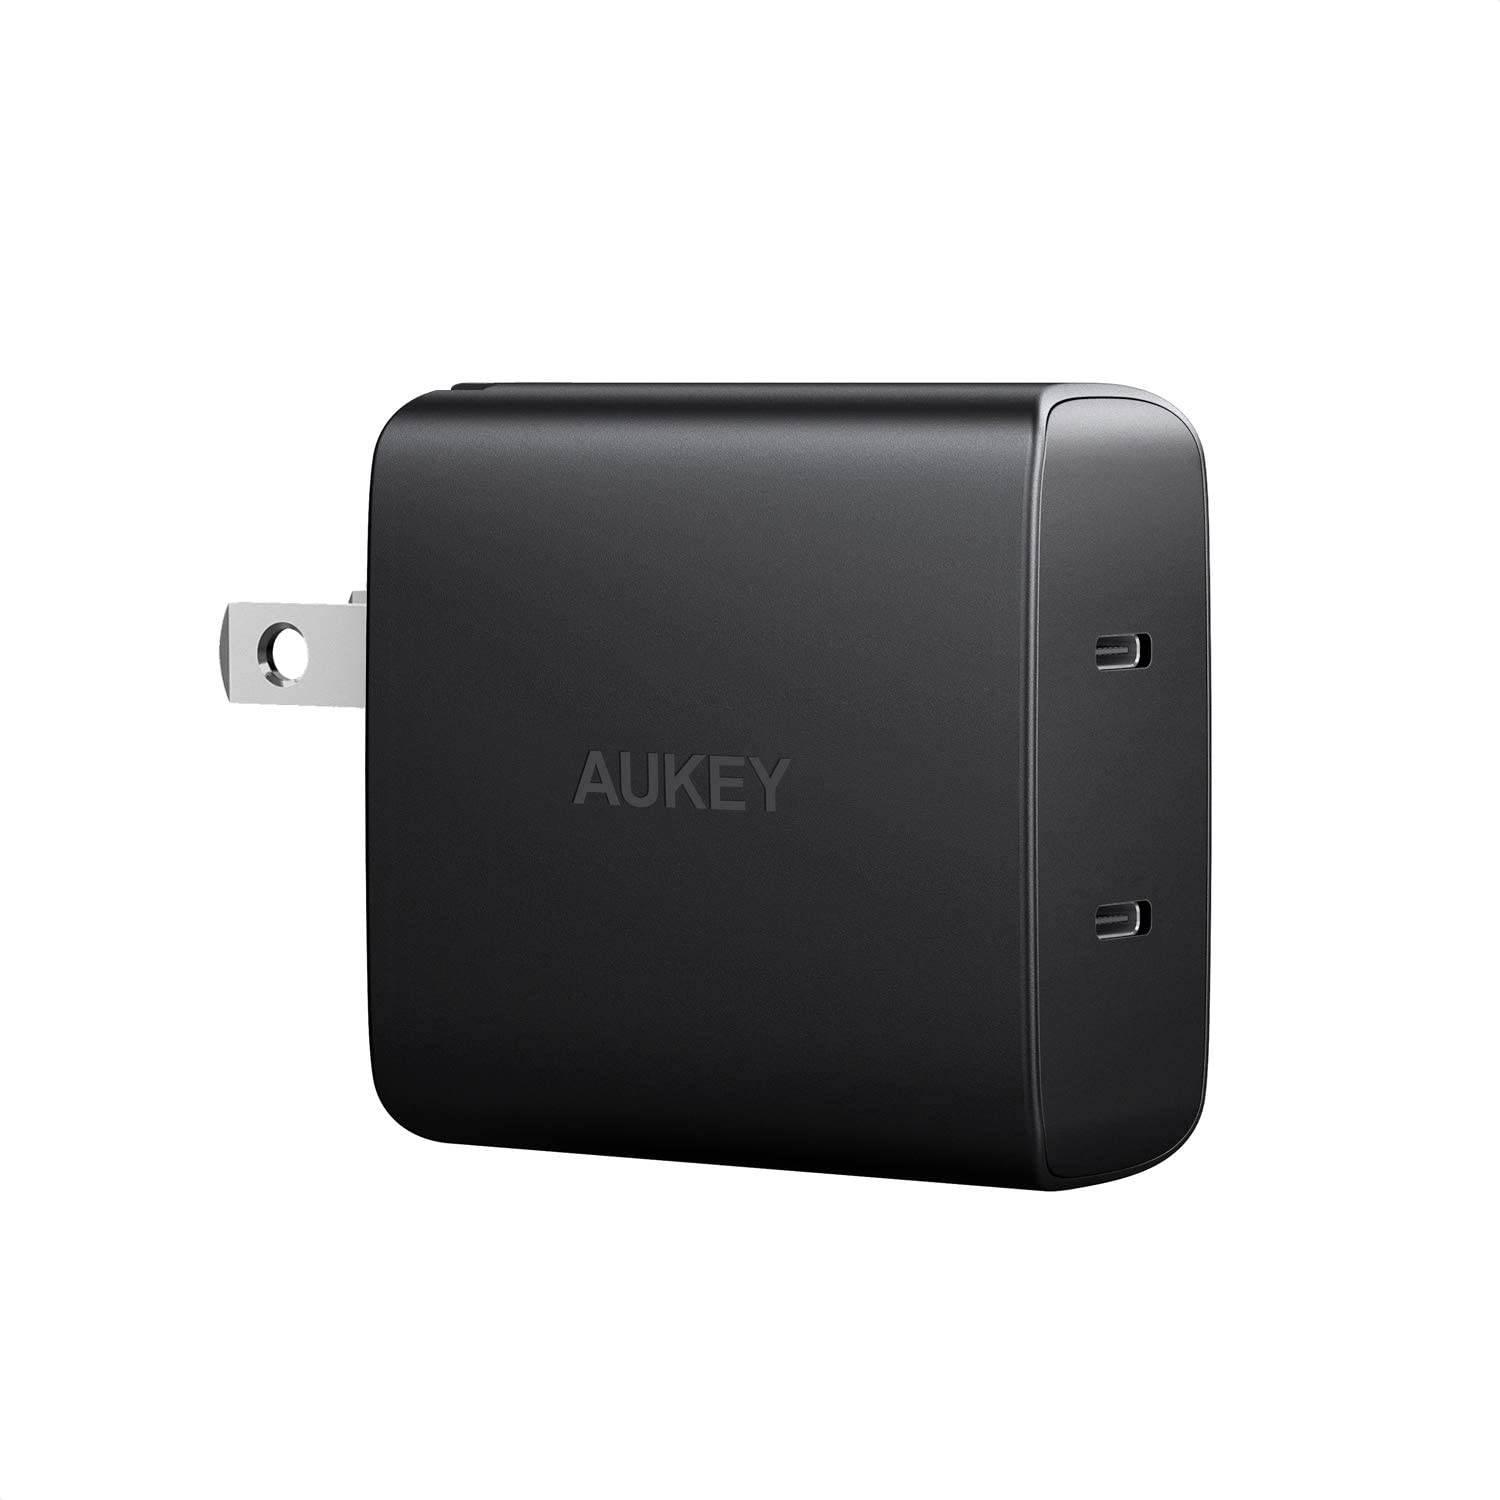 AUKEY 36W 2-Port Ultra Compact USB C Charger